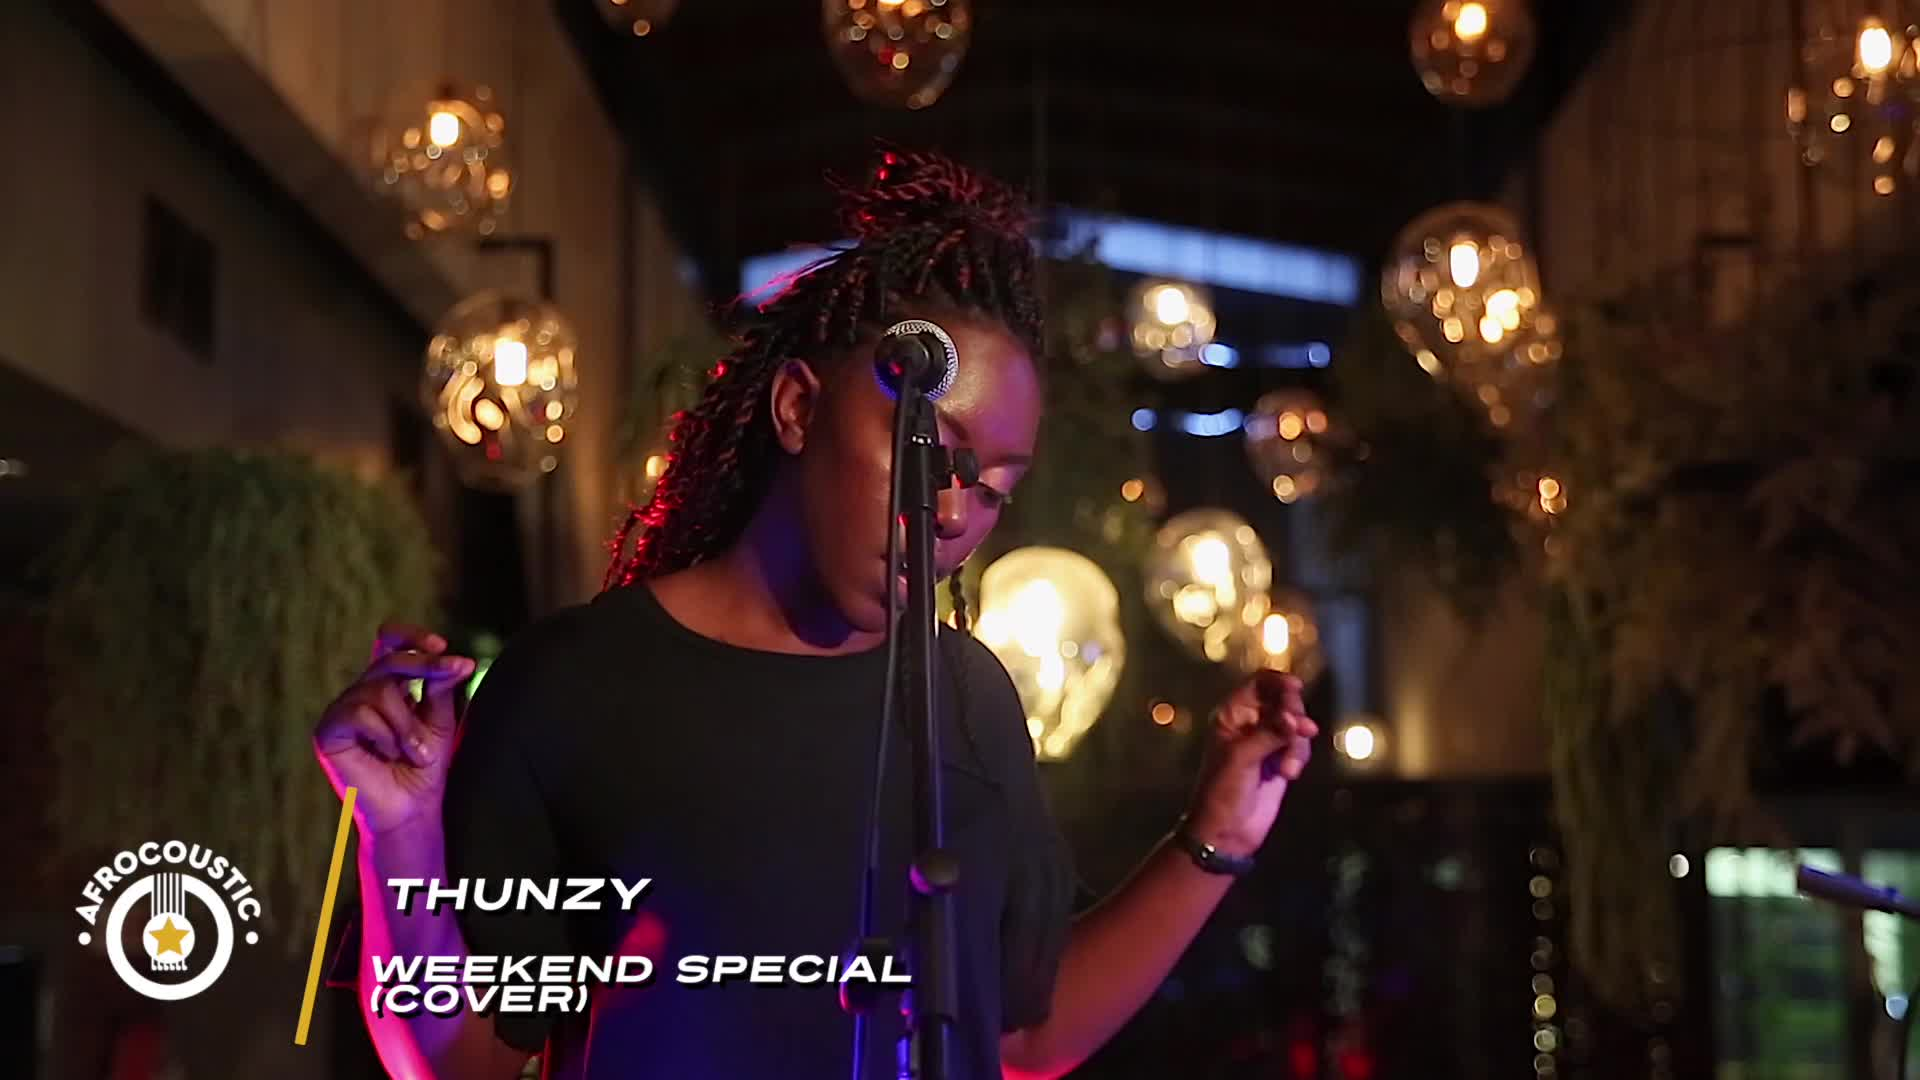 Afrocoustic - Thunzy - Weekend Special